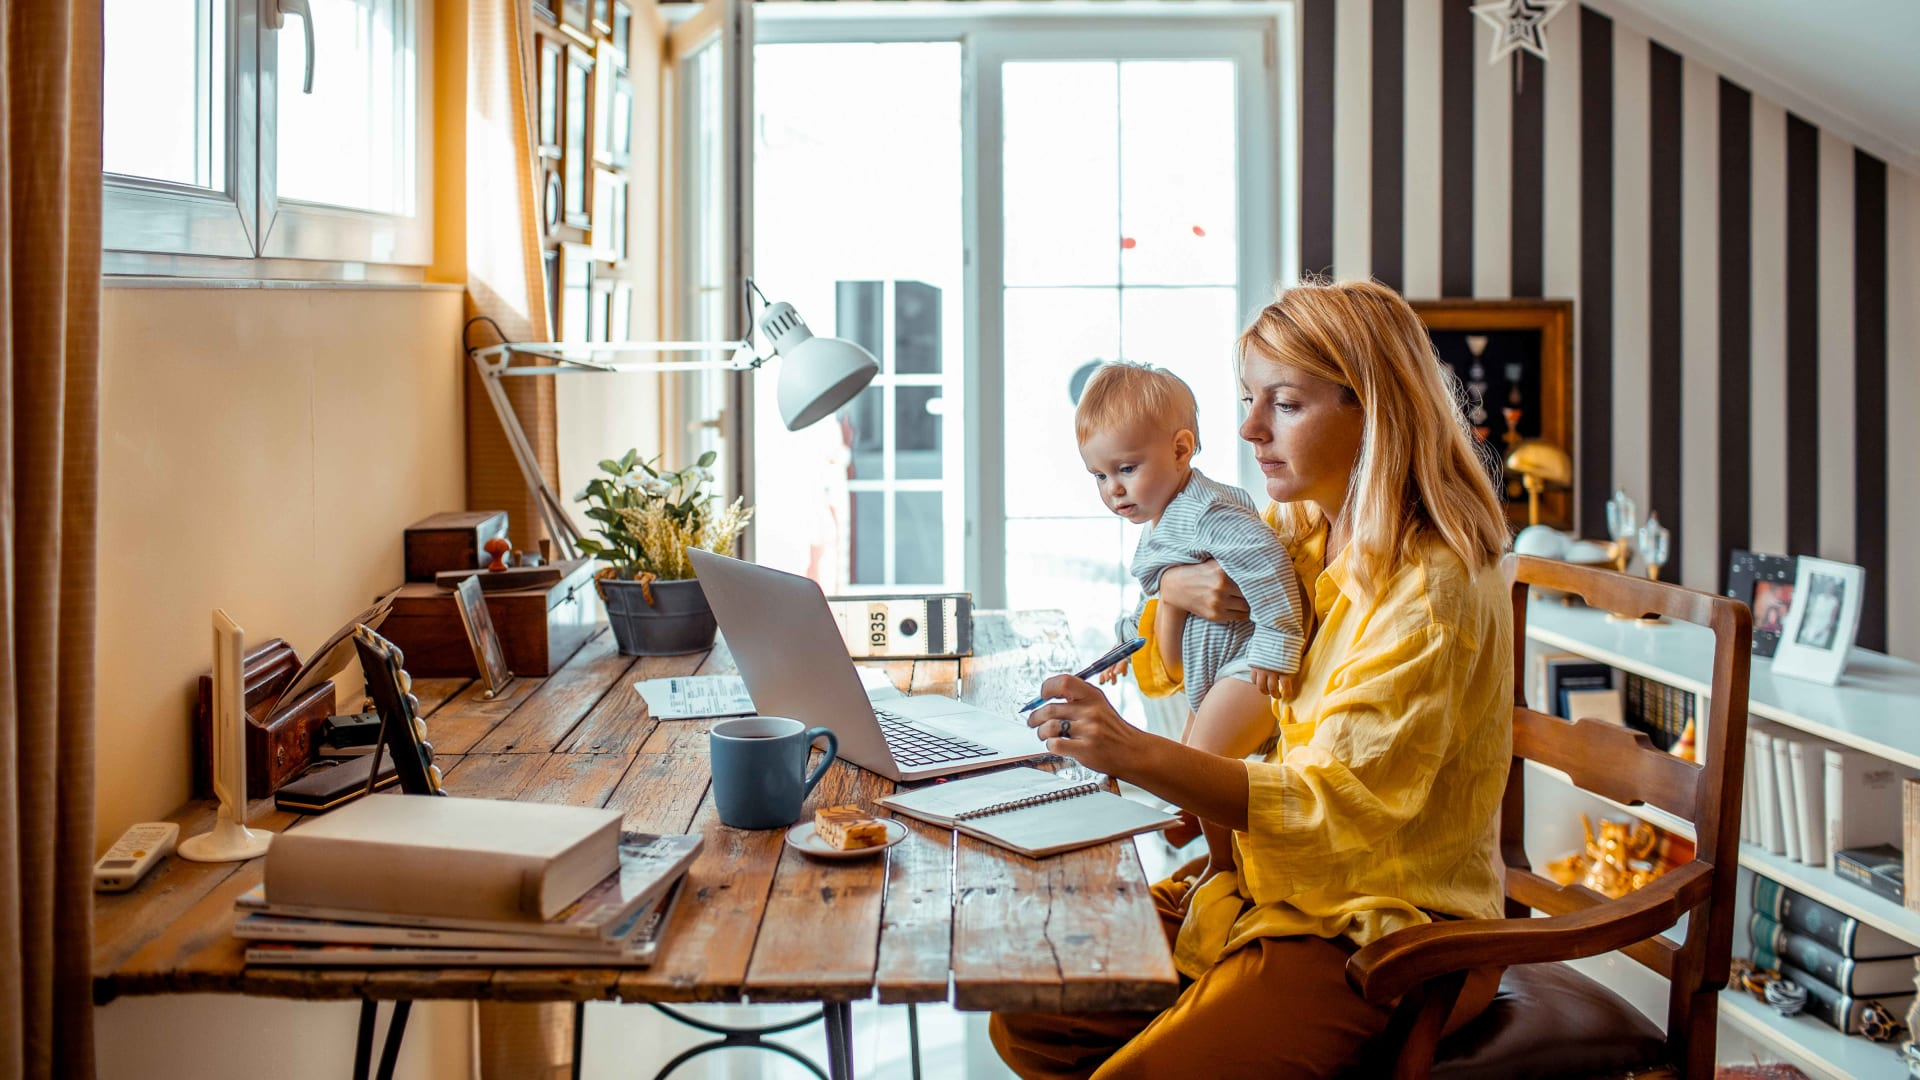 Parents Want to Work From Home. Here's Why They Shouldn't, a Stanford Professor Says